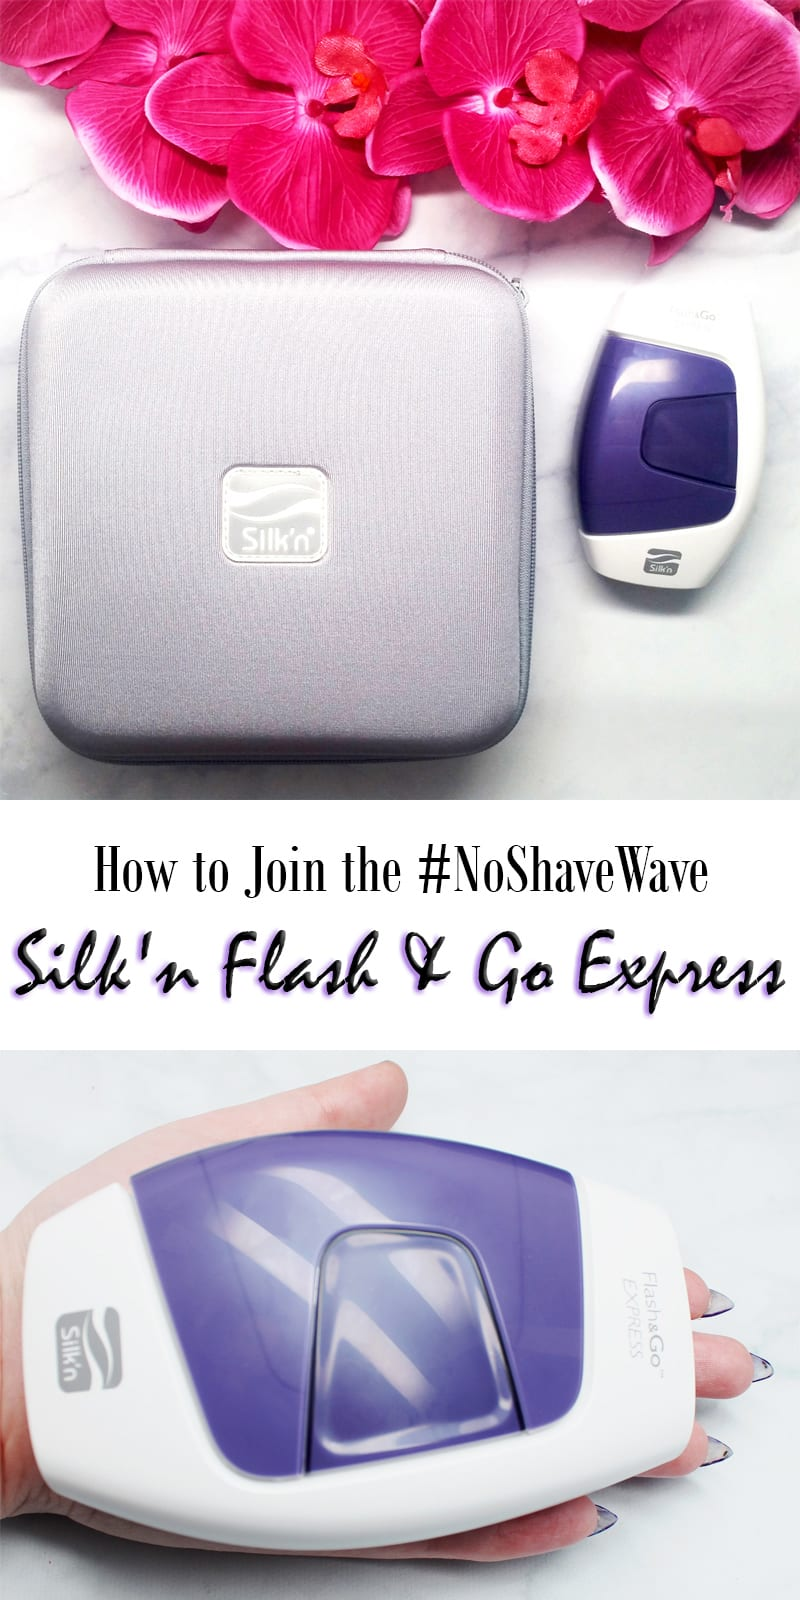 Silk n flash & go express